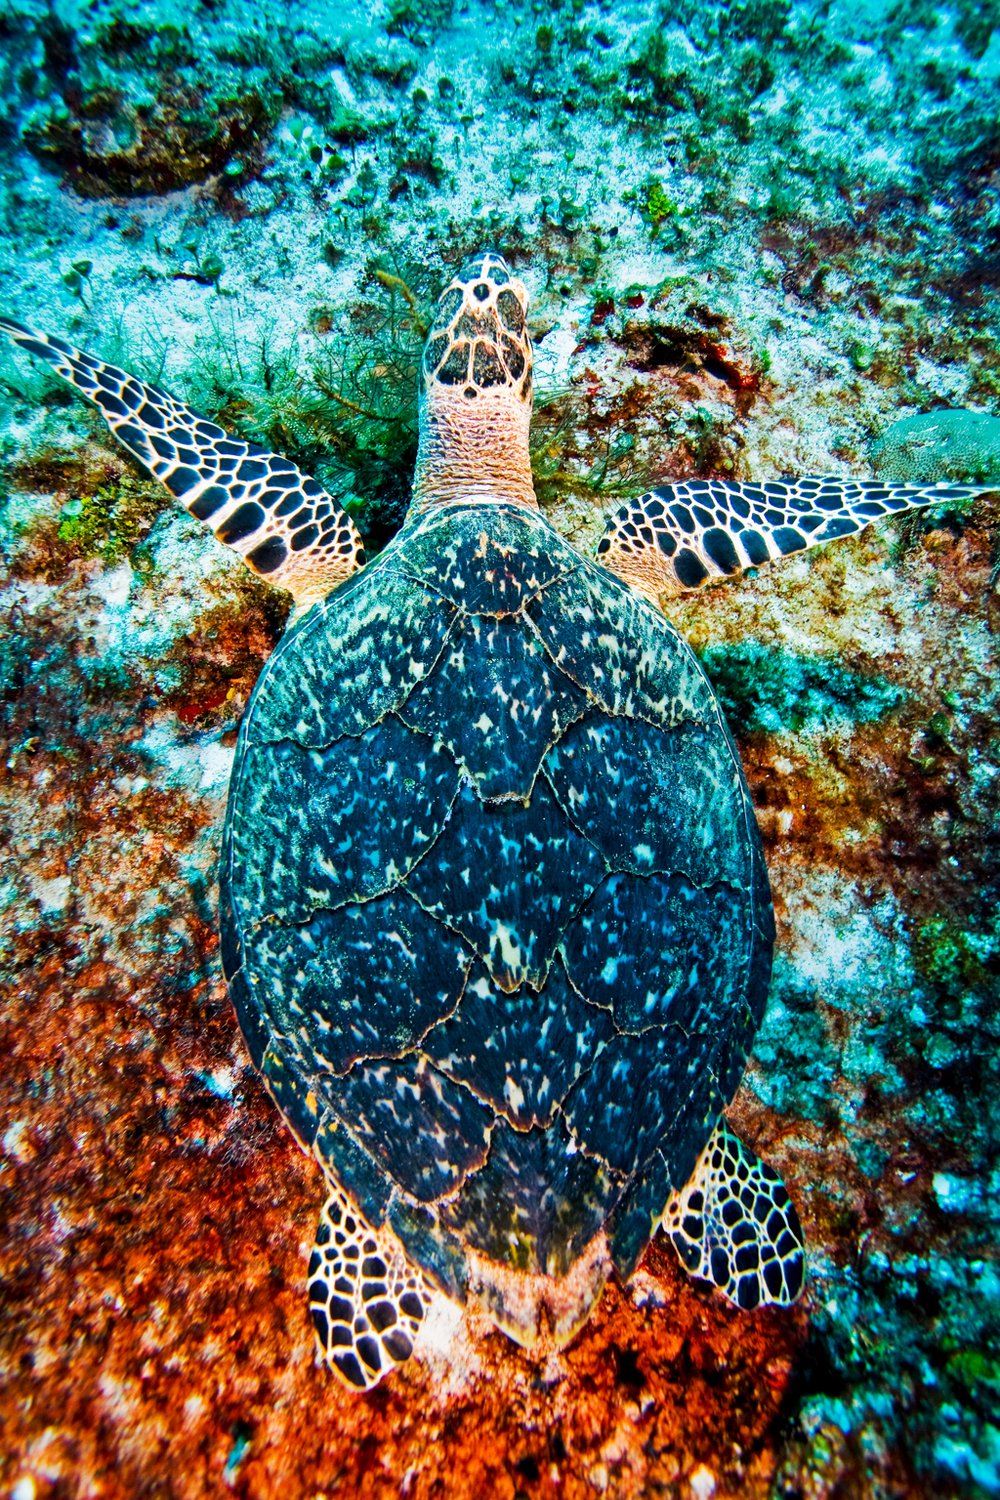 hawksbill sea turtle Eretmochelys imbricata, swimming off the waters of Cozumel, Mexico in the Gulf of Mexico